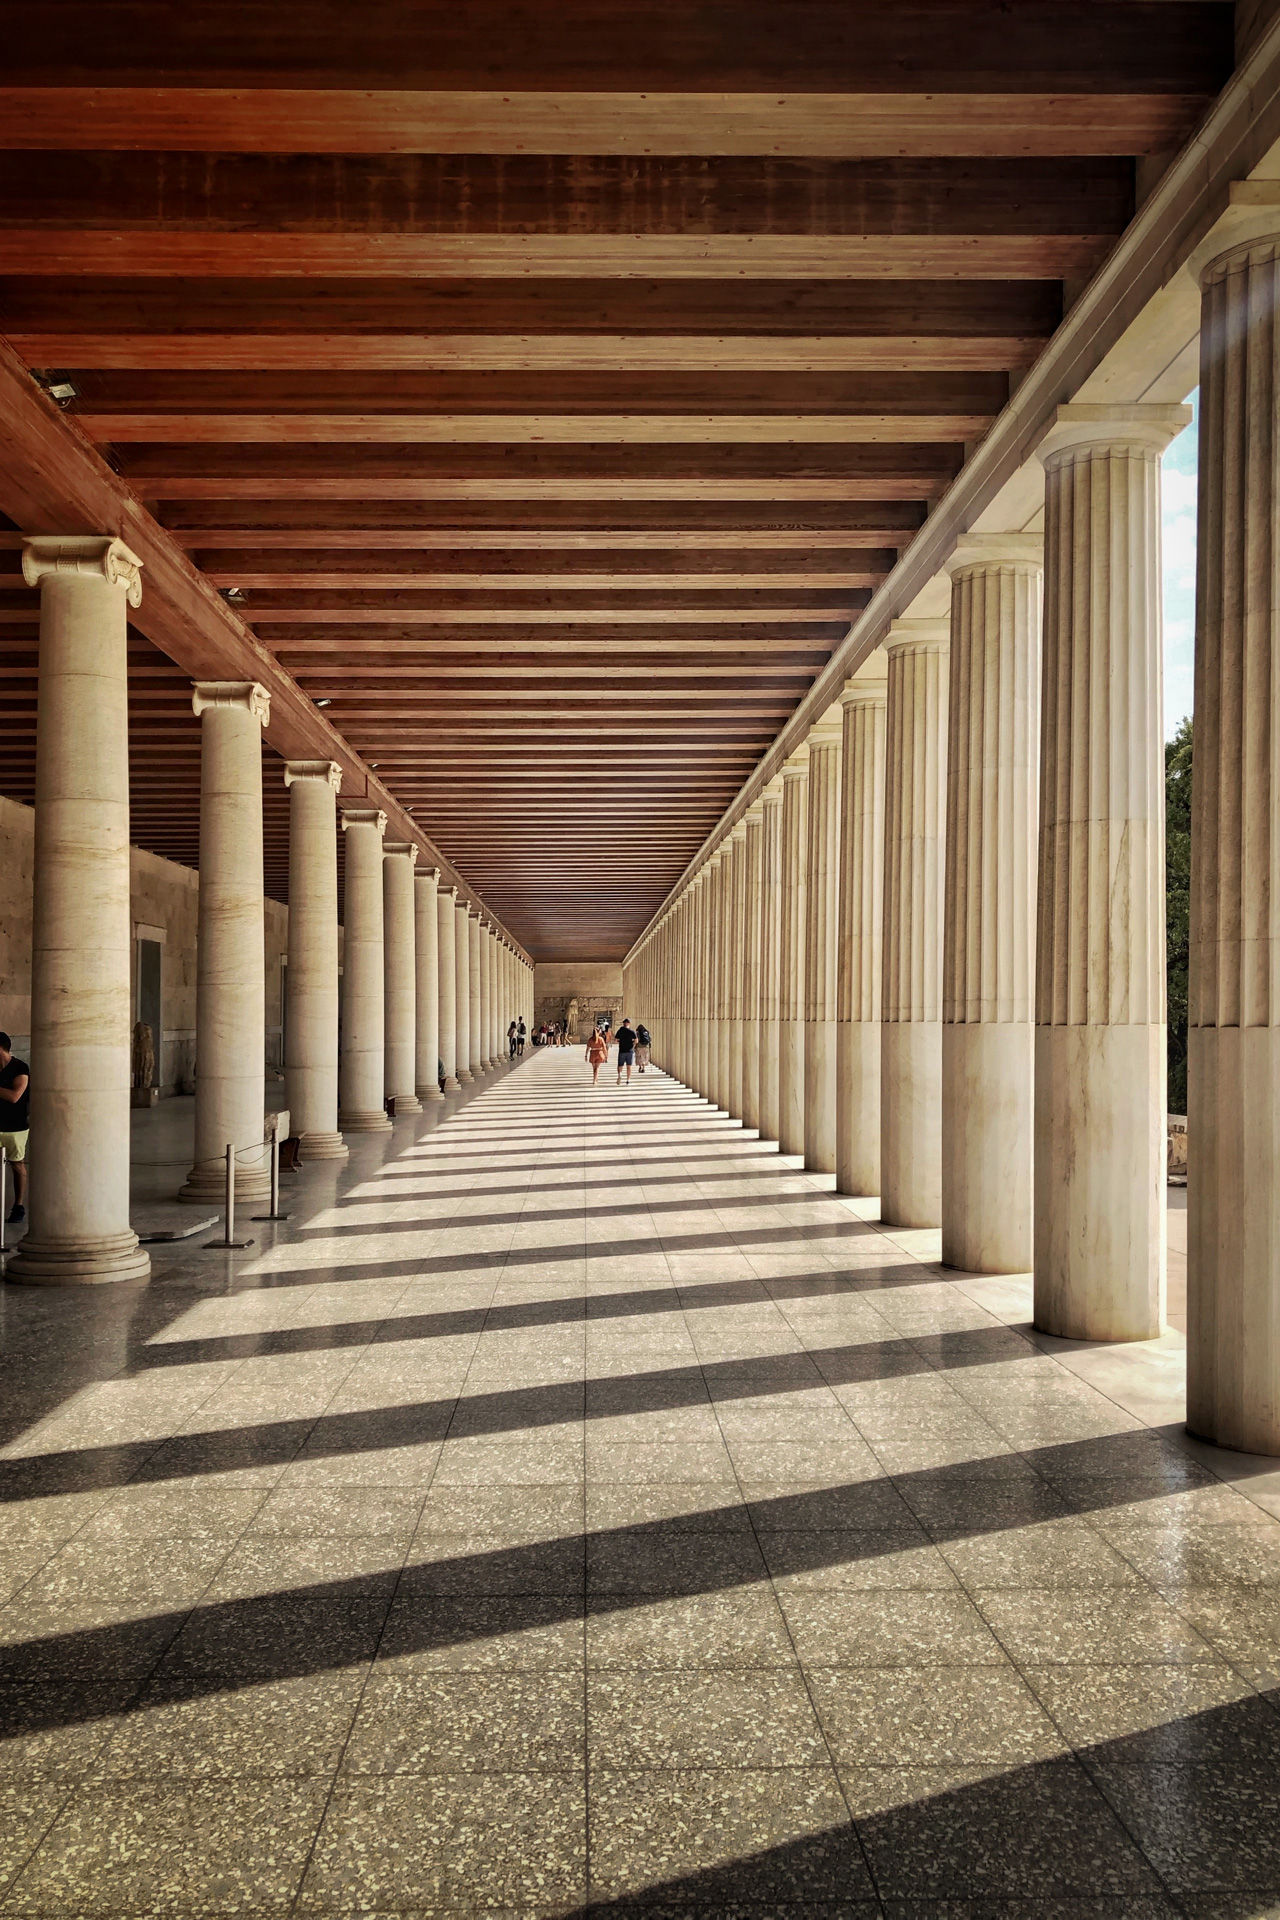 The Stoa of Attalos, named after King Attalos II of Pergamon who had it built as one of the city's main marketplaces in the 2nd century BC